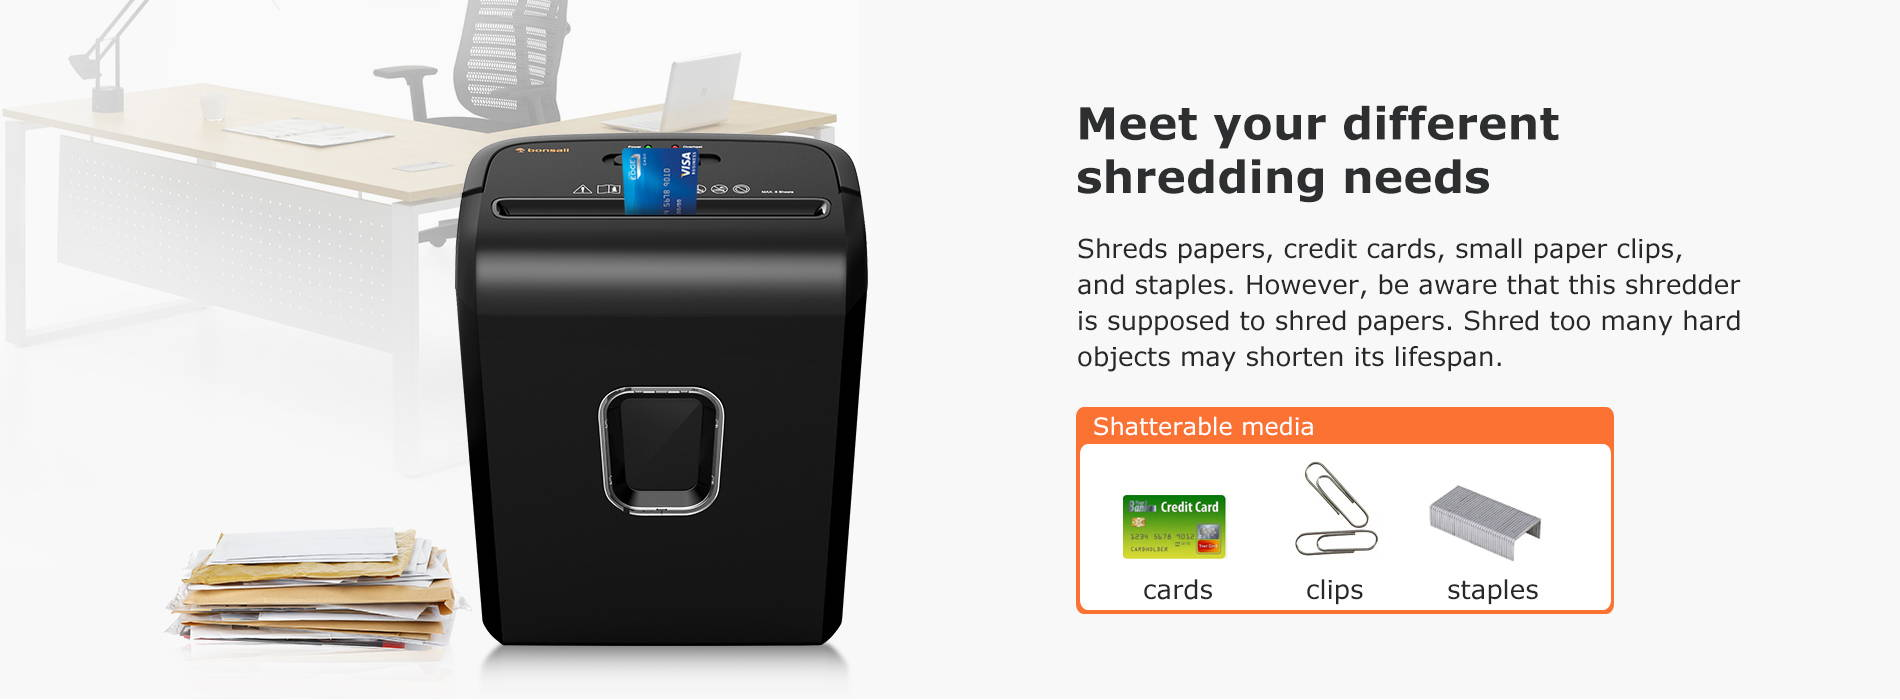 Meet your different shredding needs Shreds papers, credit cards, small paper clips, and staples. However, be aware that this shredder is supposed to shred papers. Shred too many hard objects may shorten its lifespan.